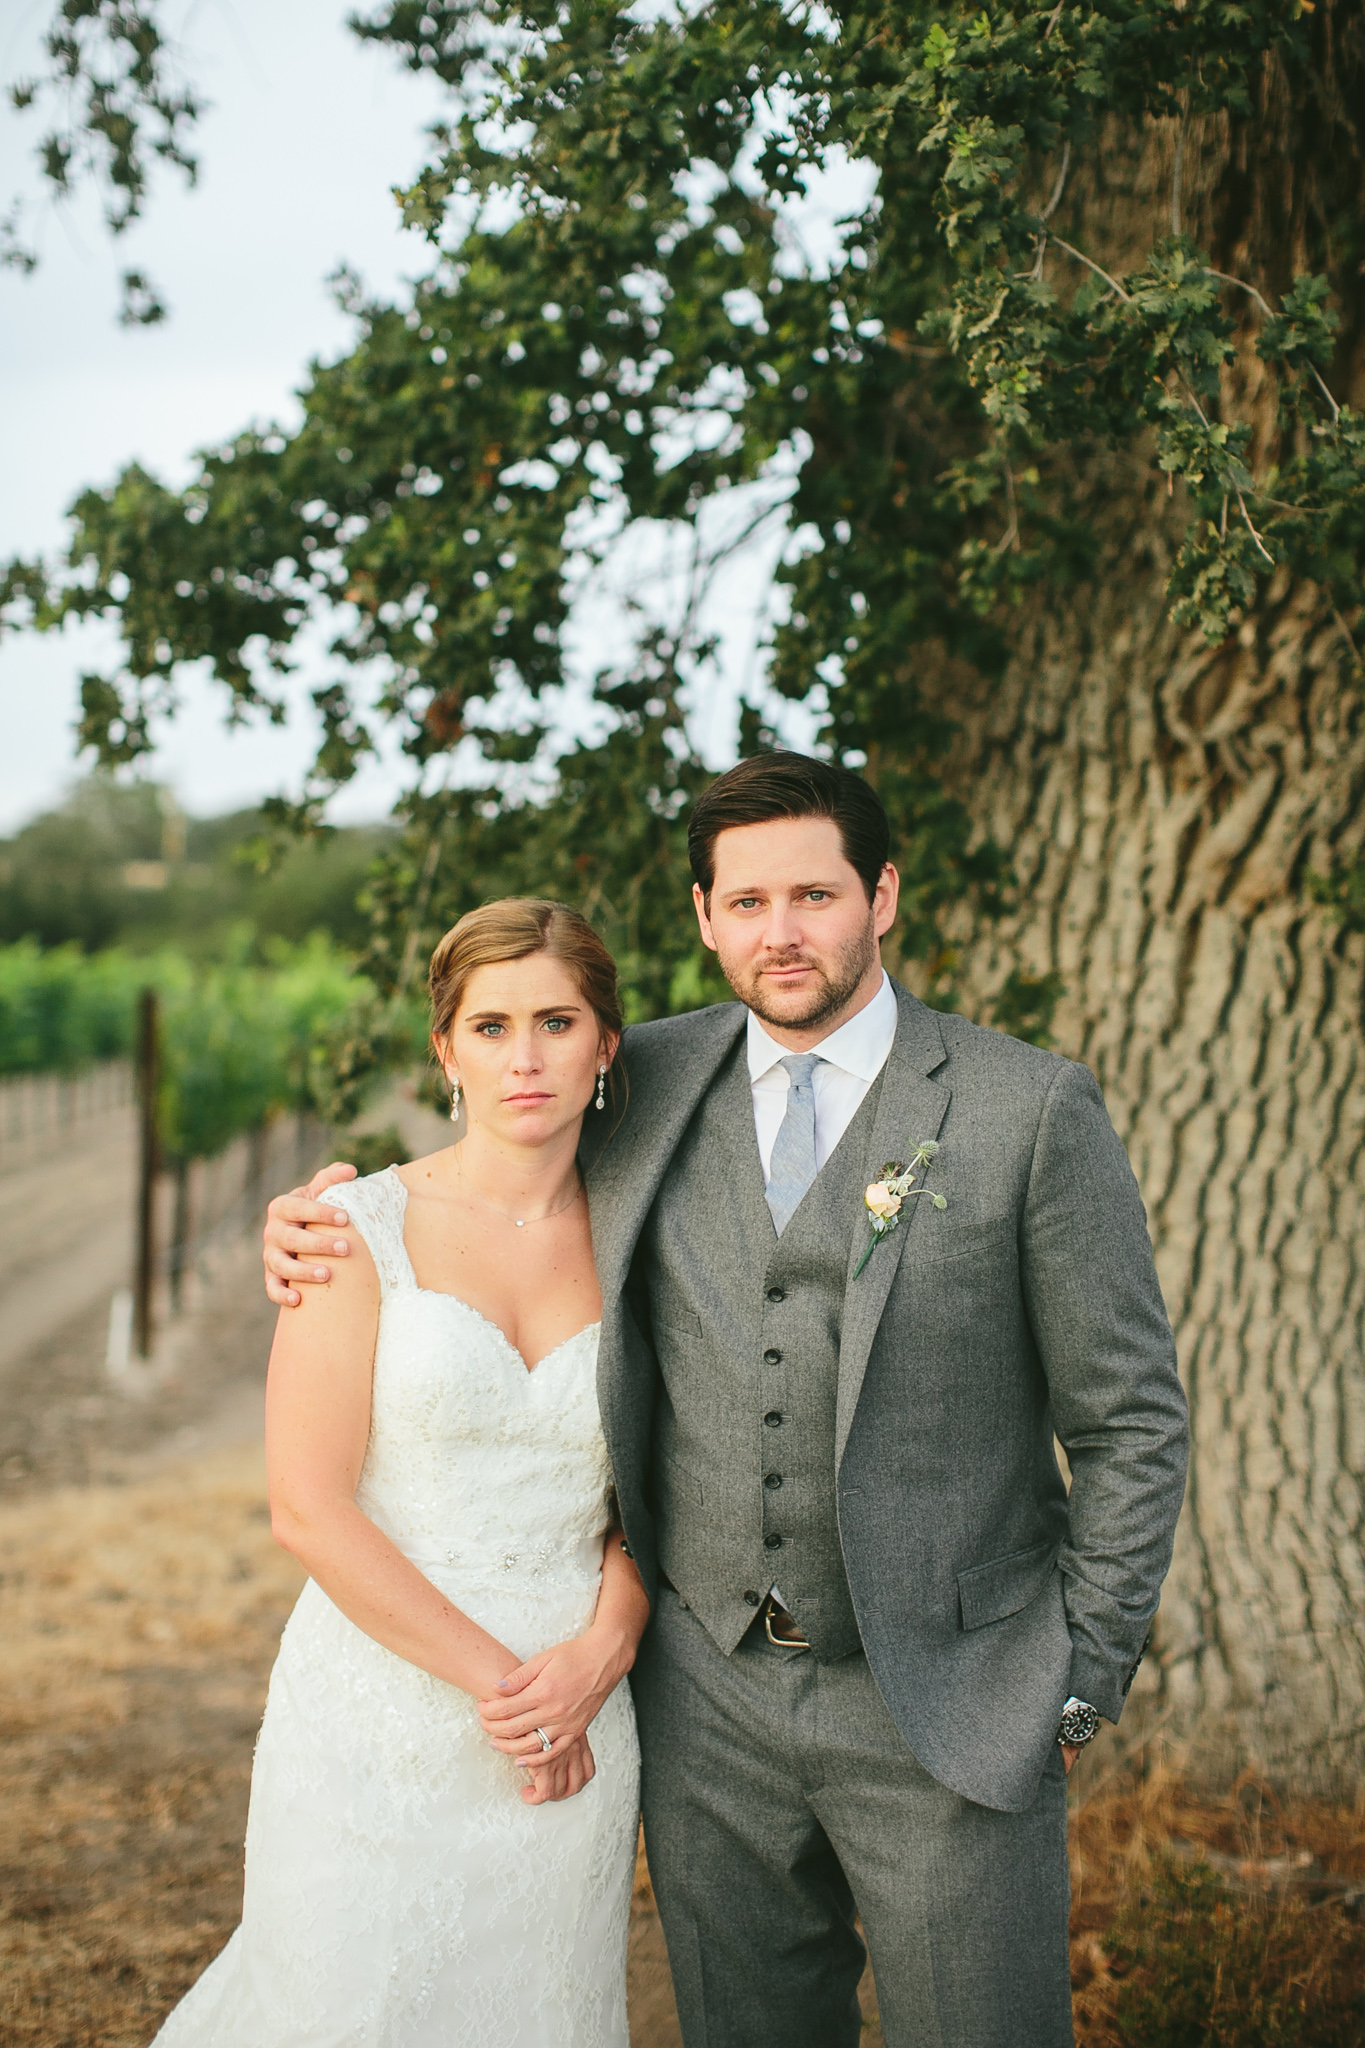 whitney+parker-WEB_BLOG-127